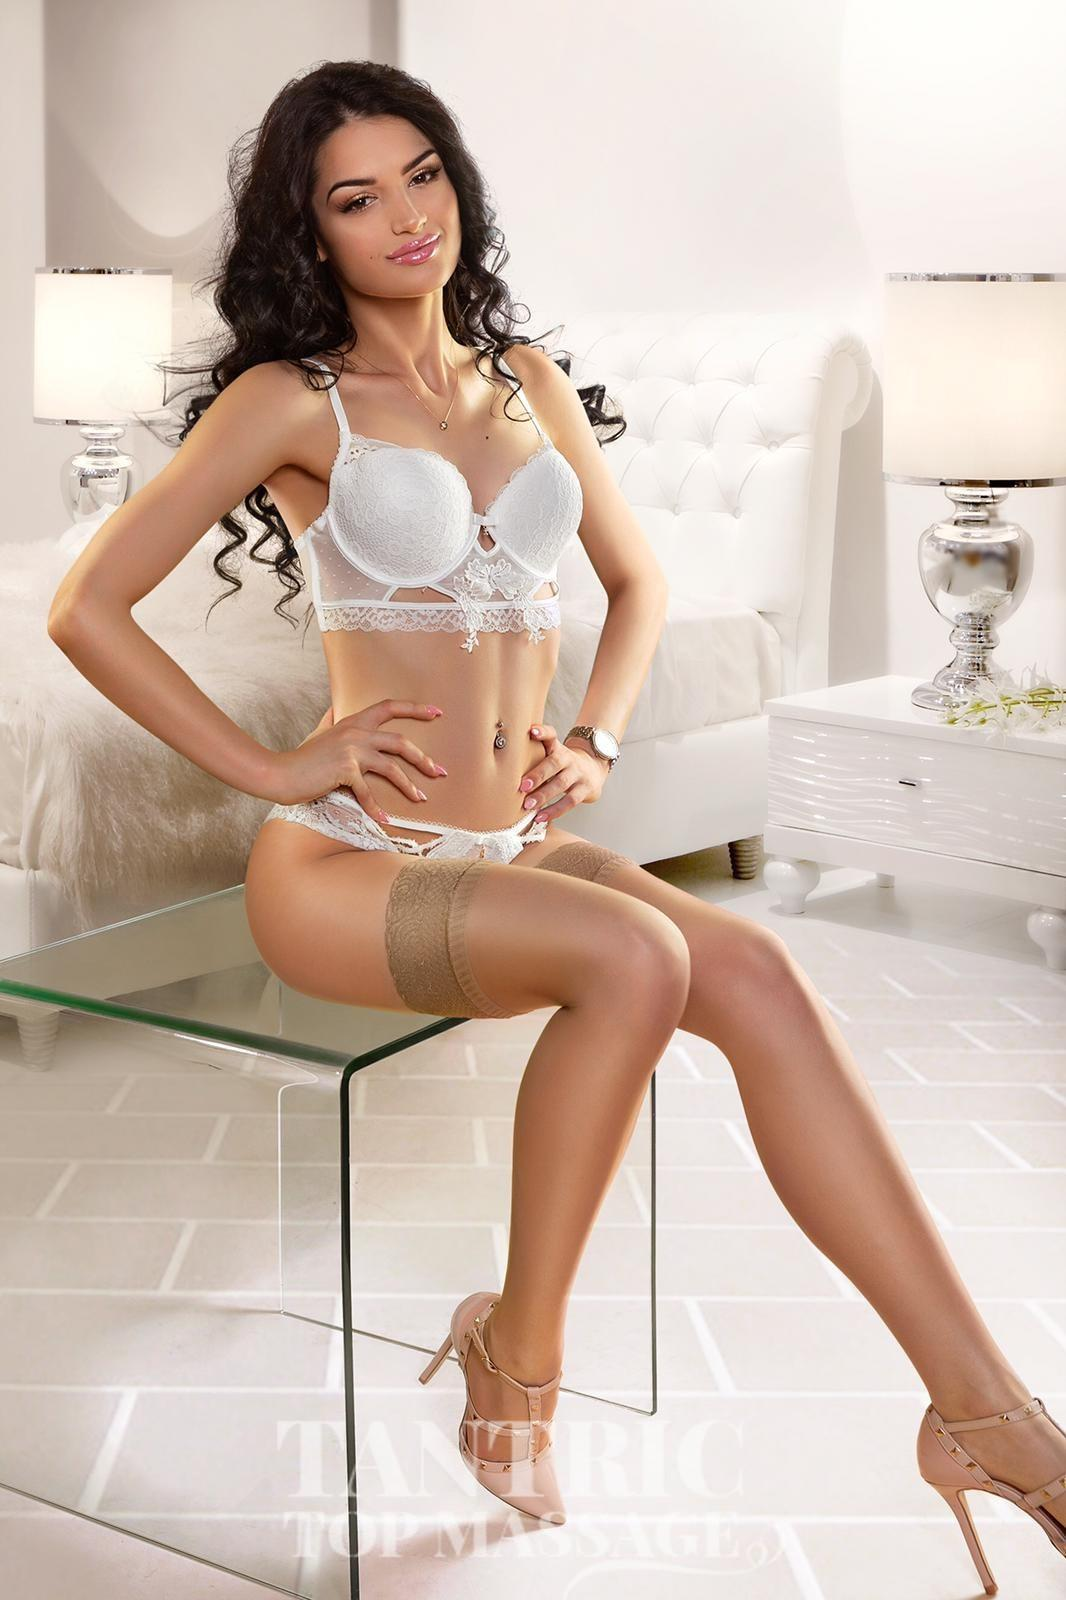 Maria from AJ London Escorts